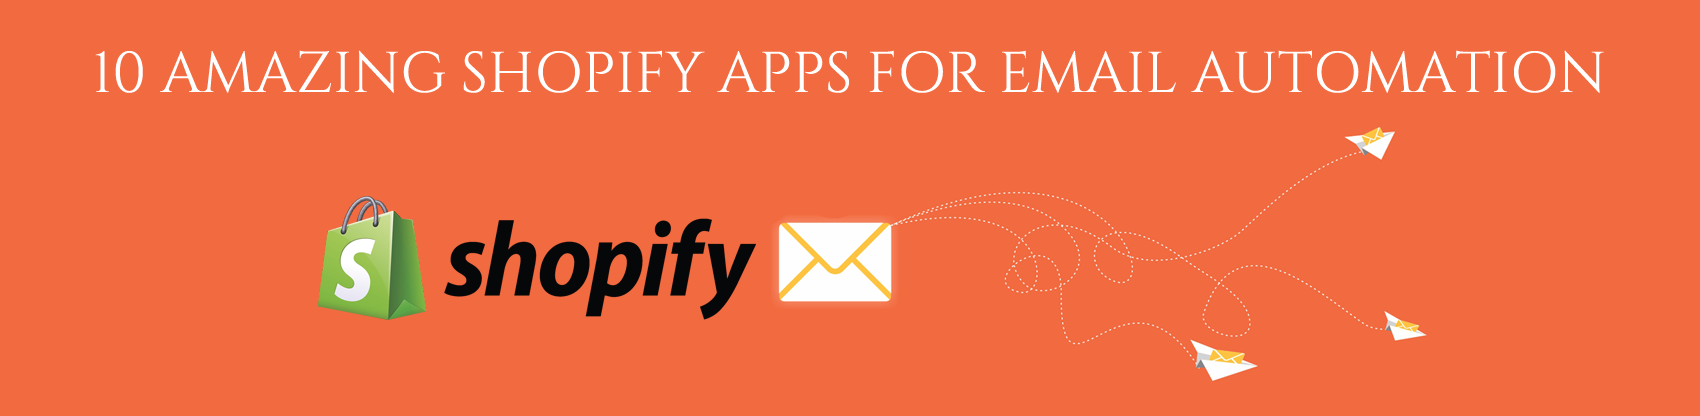 10 Amazing Shopify Apps for Email Automation